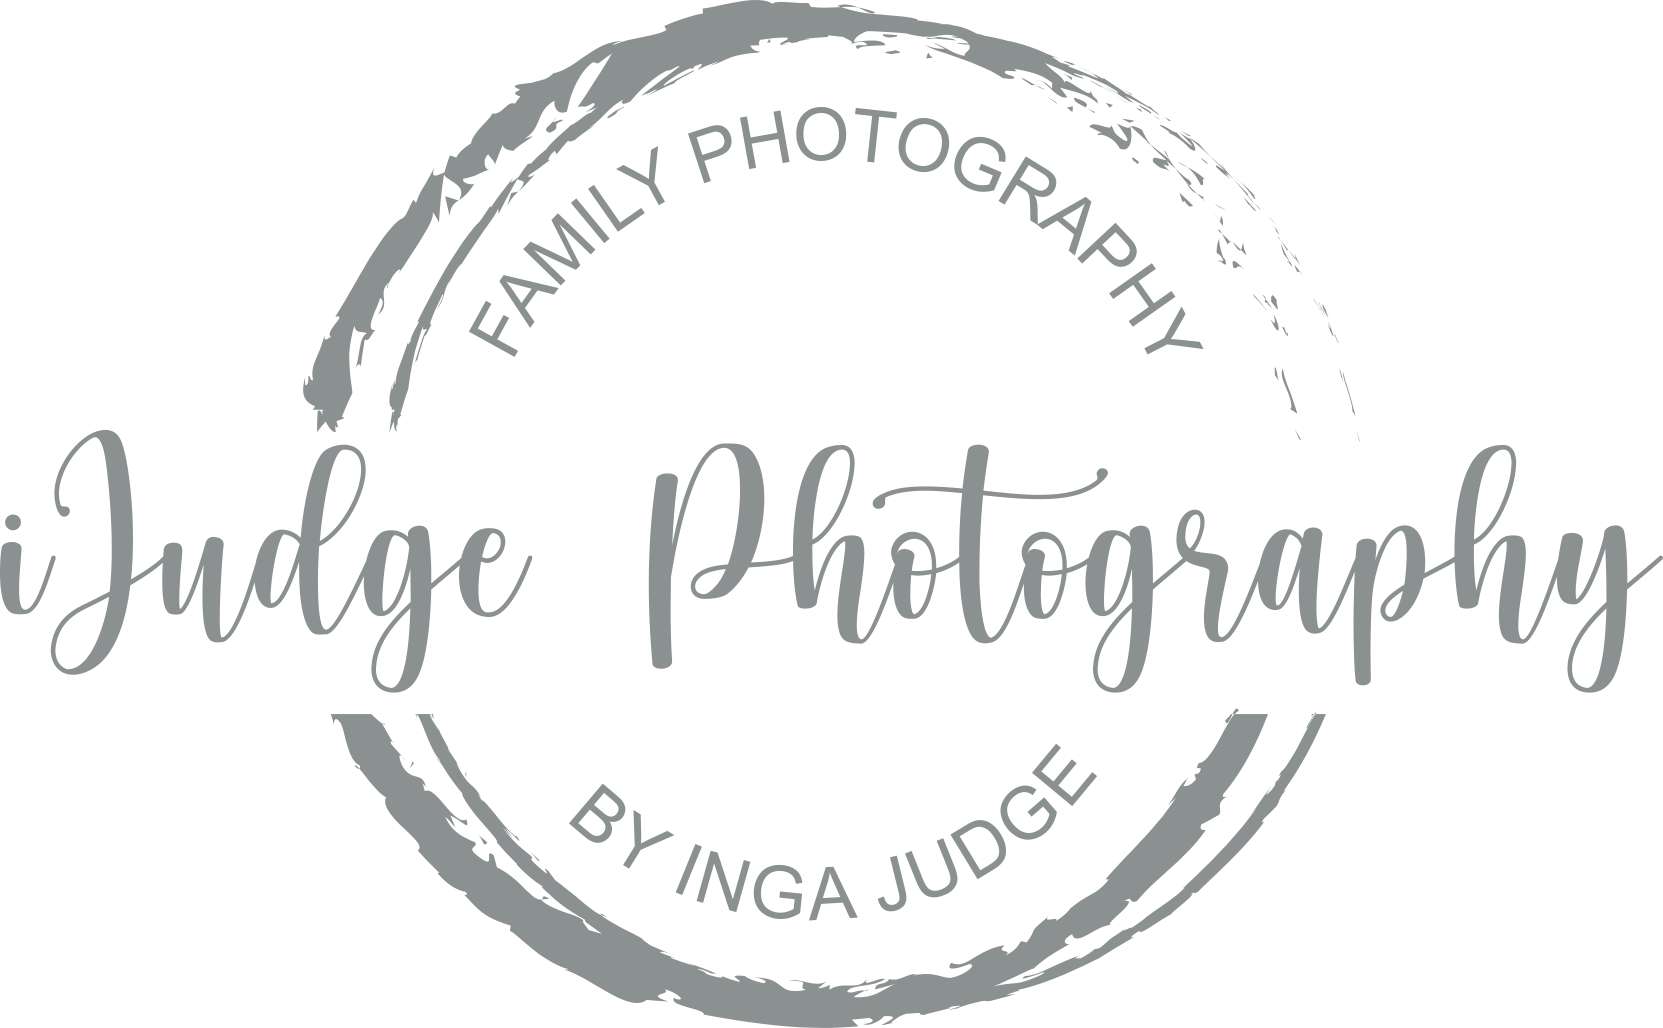 Family Photographer in South West London & Surrey: Richmond Upon Thames – St Margarets – Twickenham – Hampton – Teddington – Kingston upon Thames – East Molesey – Surbiton – Wimbledon – Barnes – Chelsea – Chiswick – Across Surrey County